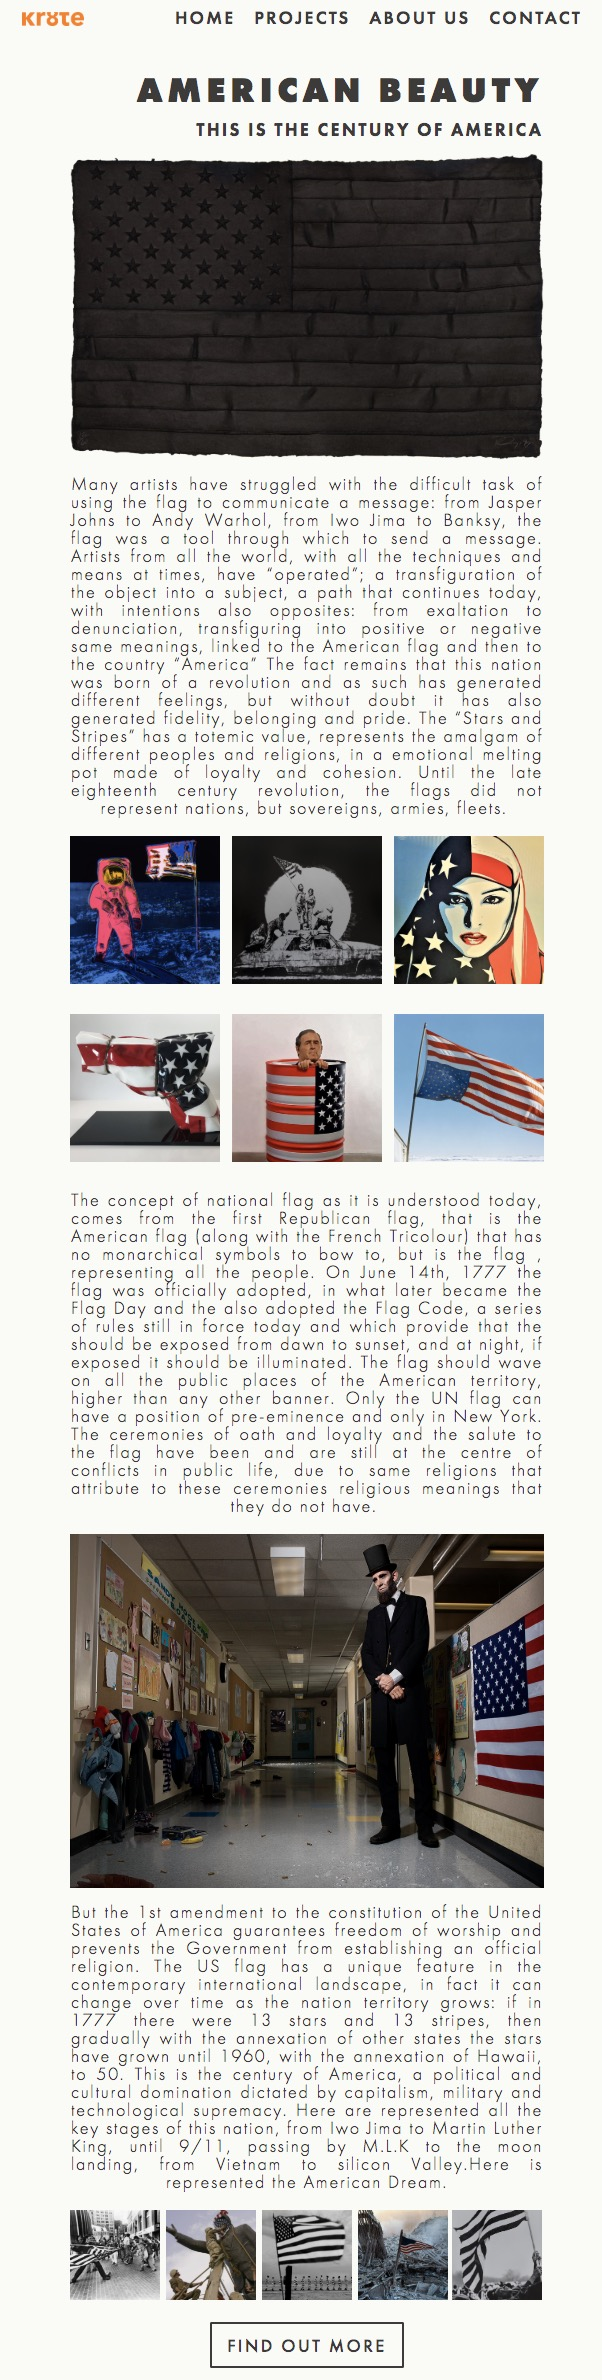 Group exhibition of artist who include the American flag in their works.